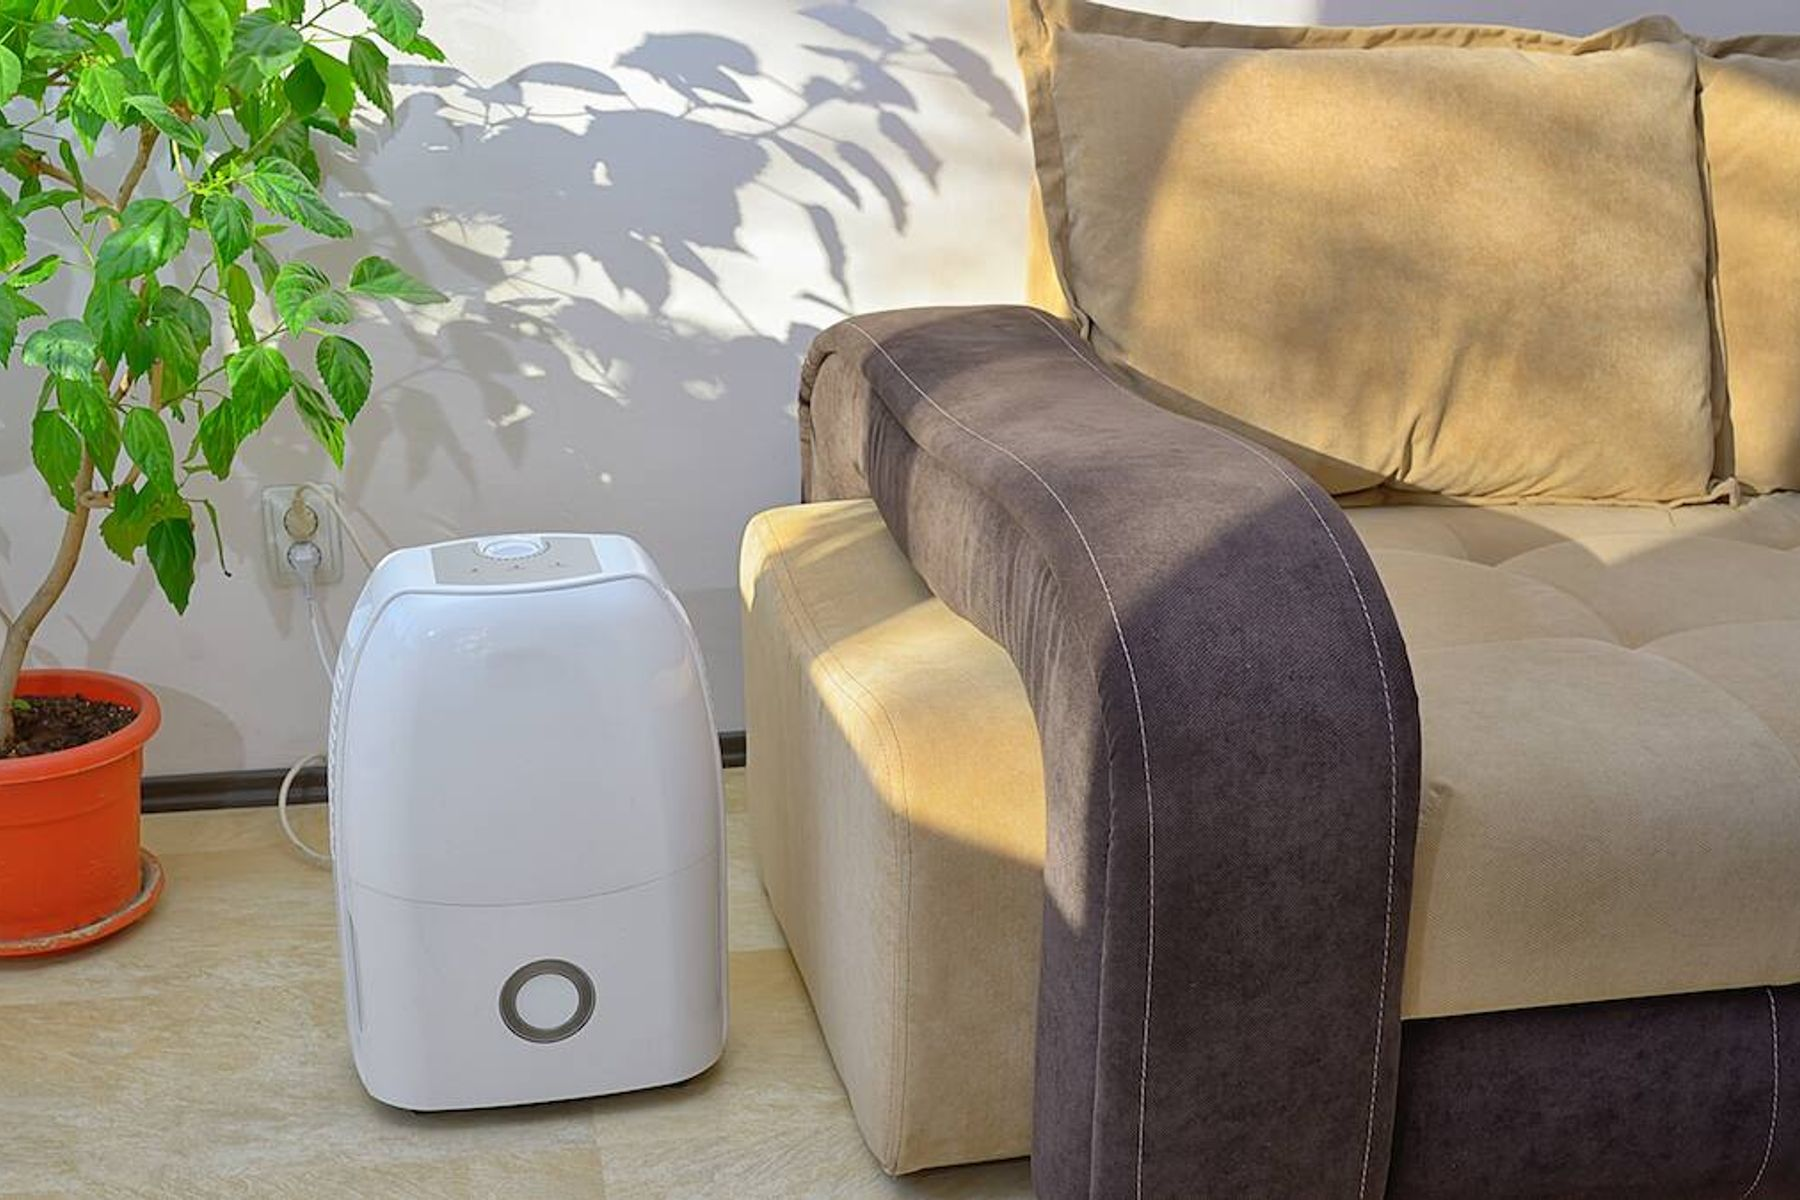 Dehumidifier sitting by a sofa inside with a potted houseplant: what does a dehumidifier do?